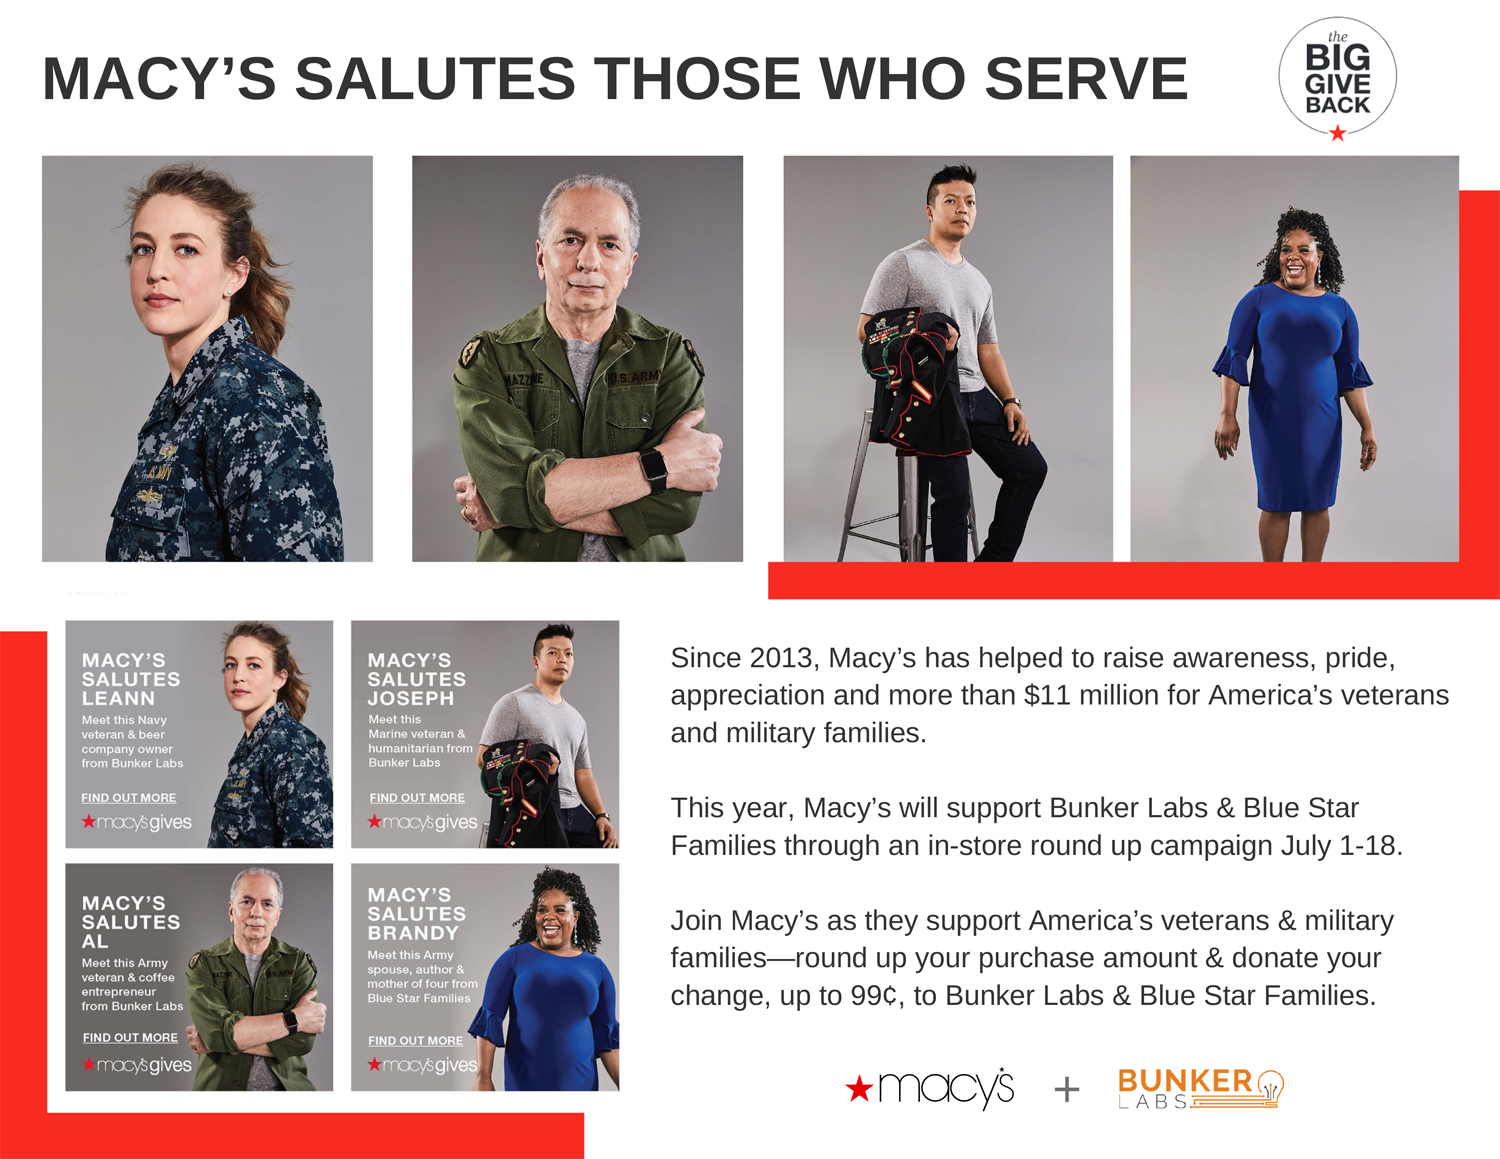 Macy's Campaign Announcement Postcard side 1.jpg